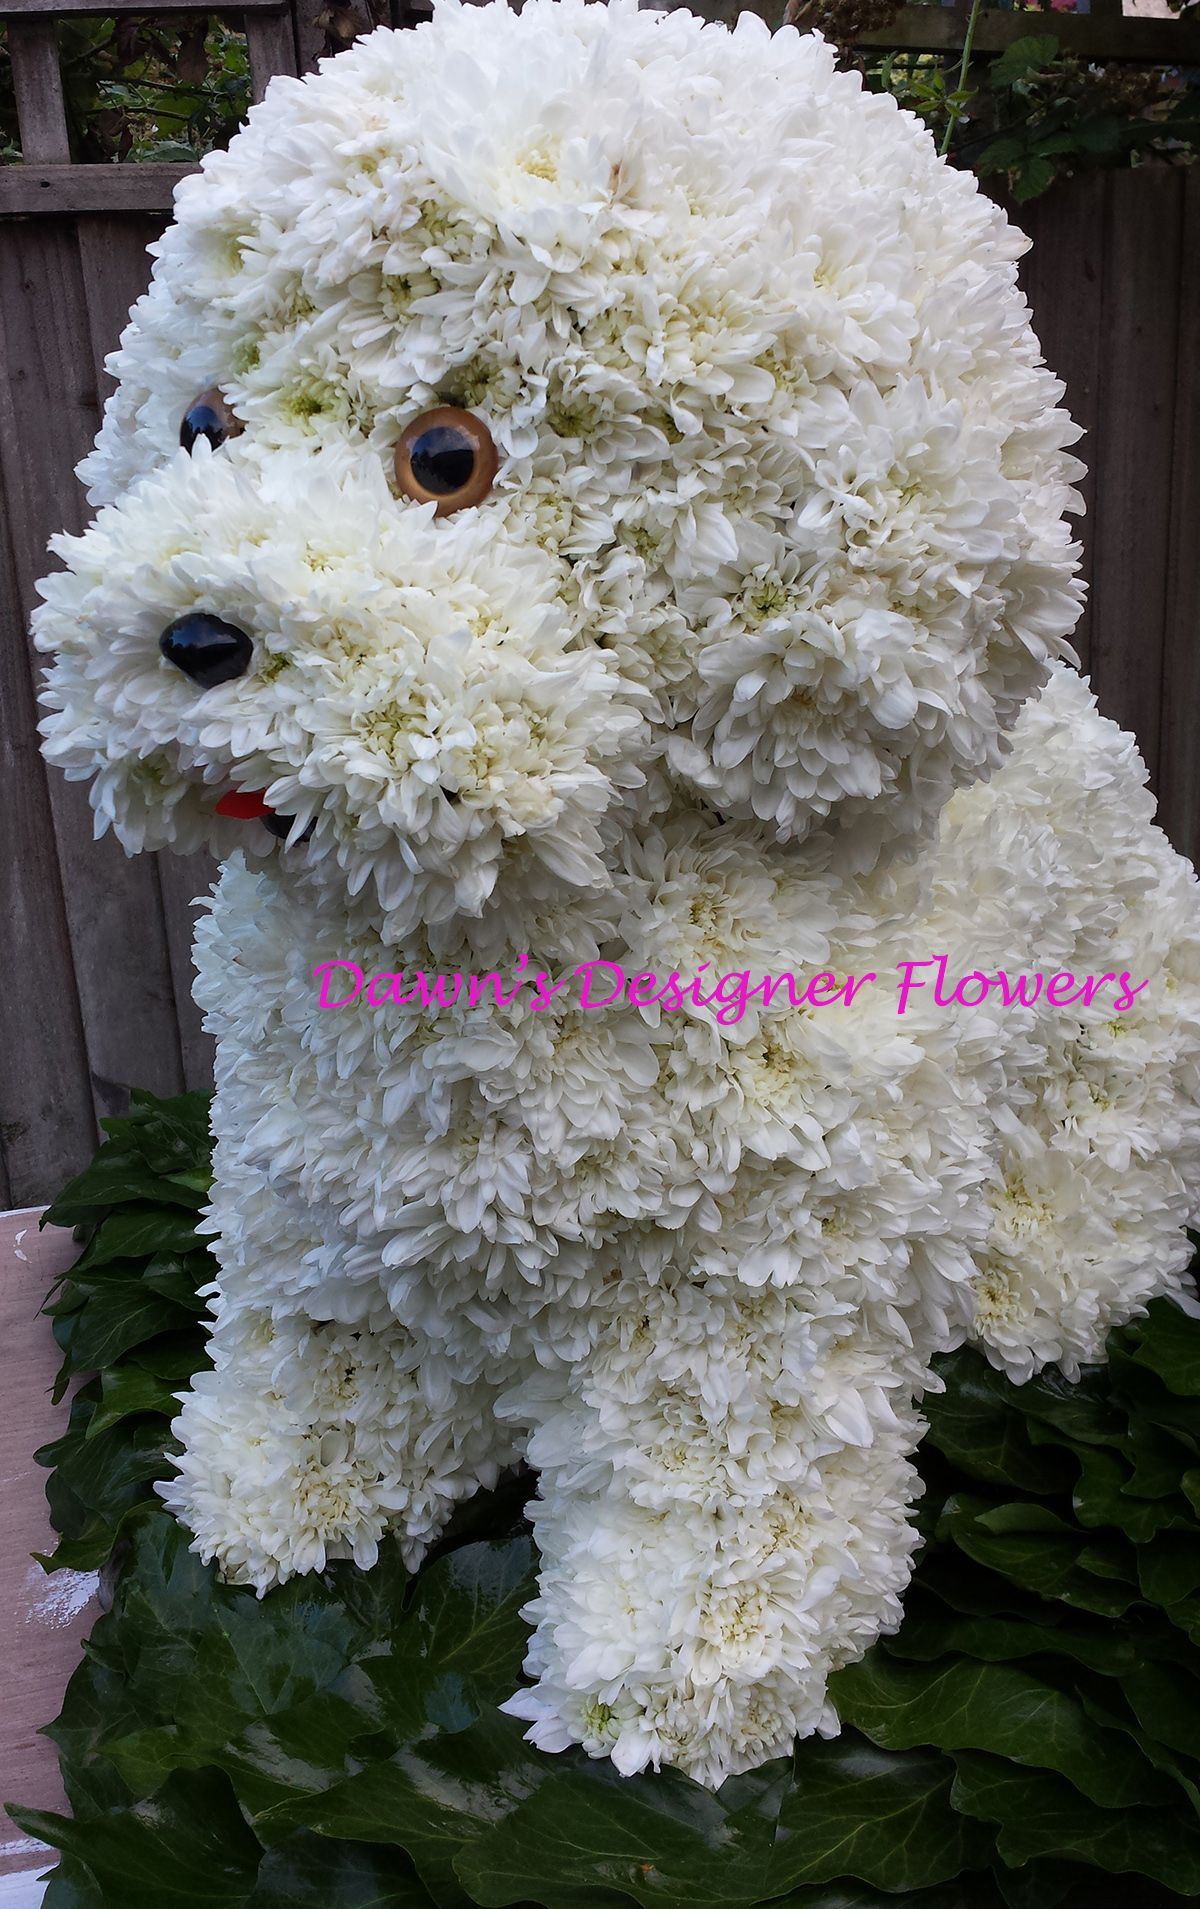 Dog /London Florist/Funeral Tribute Flowers (With images